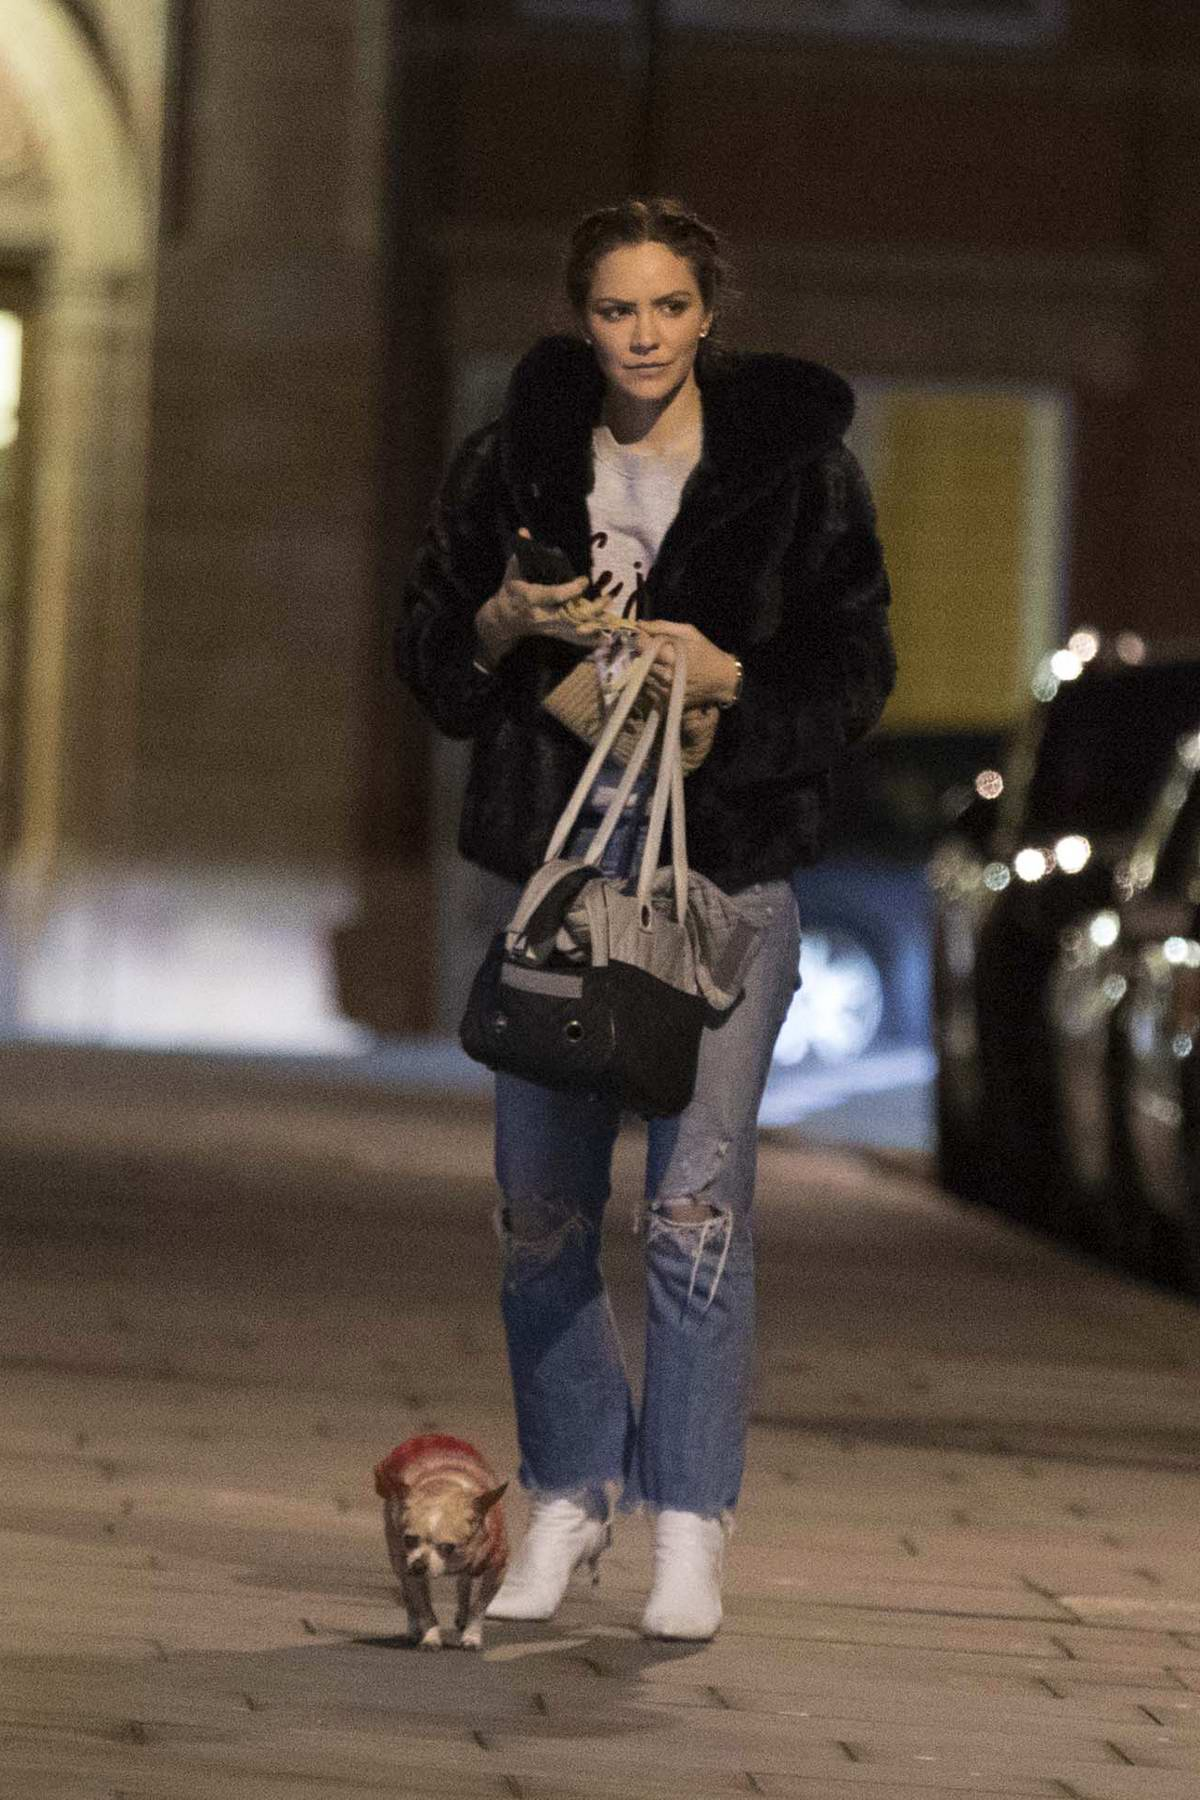 Katharine McPhee steps out to walk her dog in London, UK